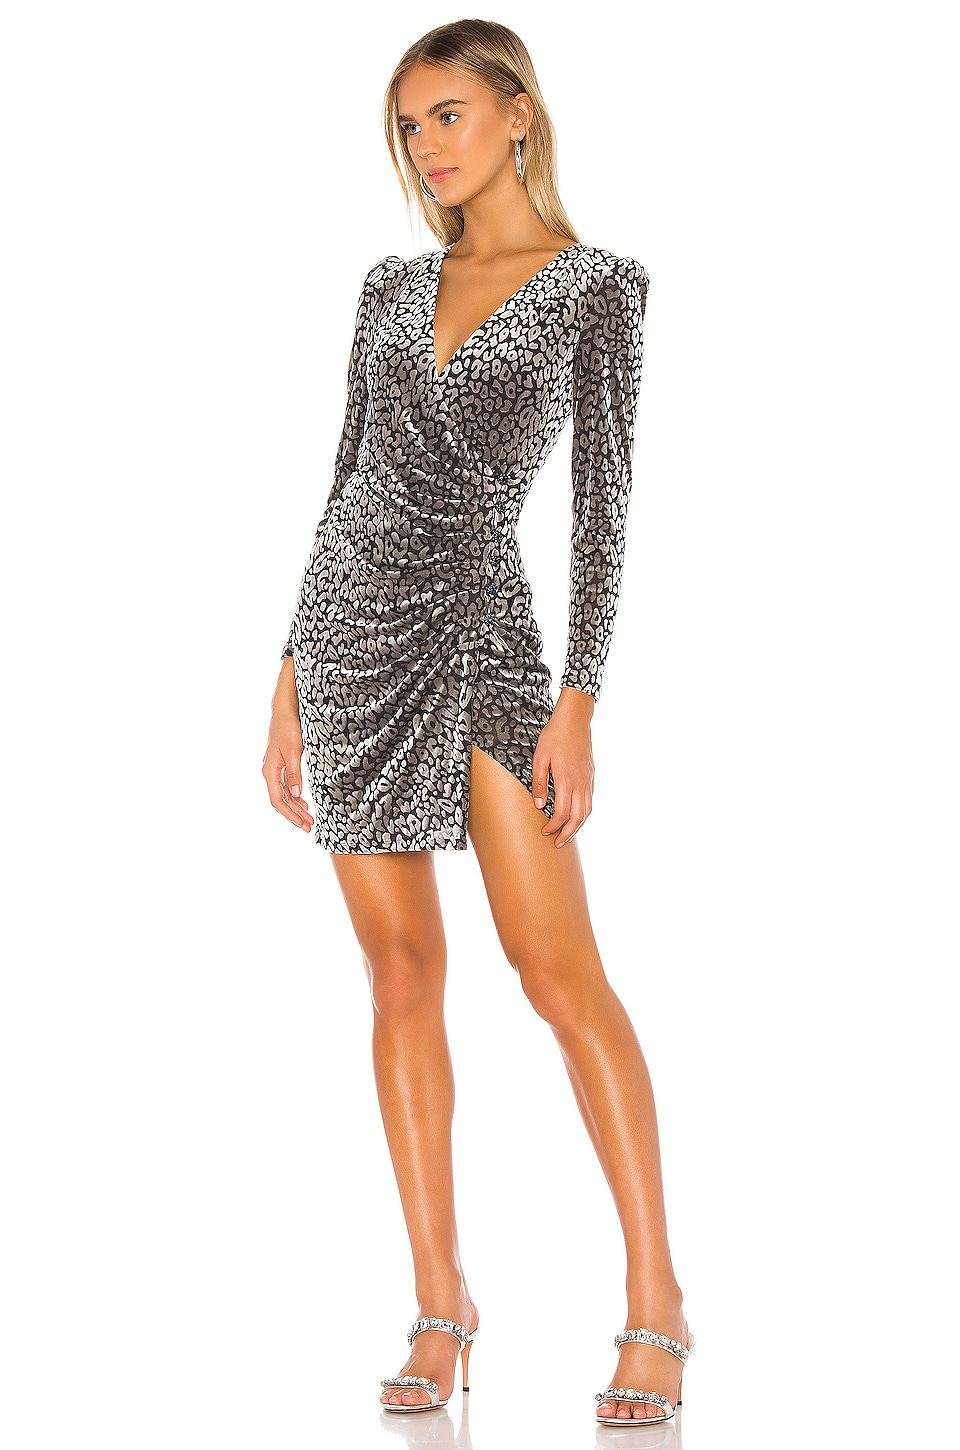 Yasmin Dress                   ASTR the Label                                                                                                                             CA$ 180.47 2